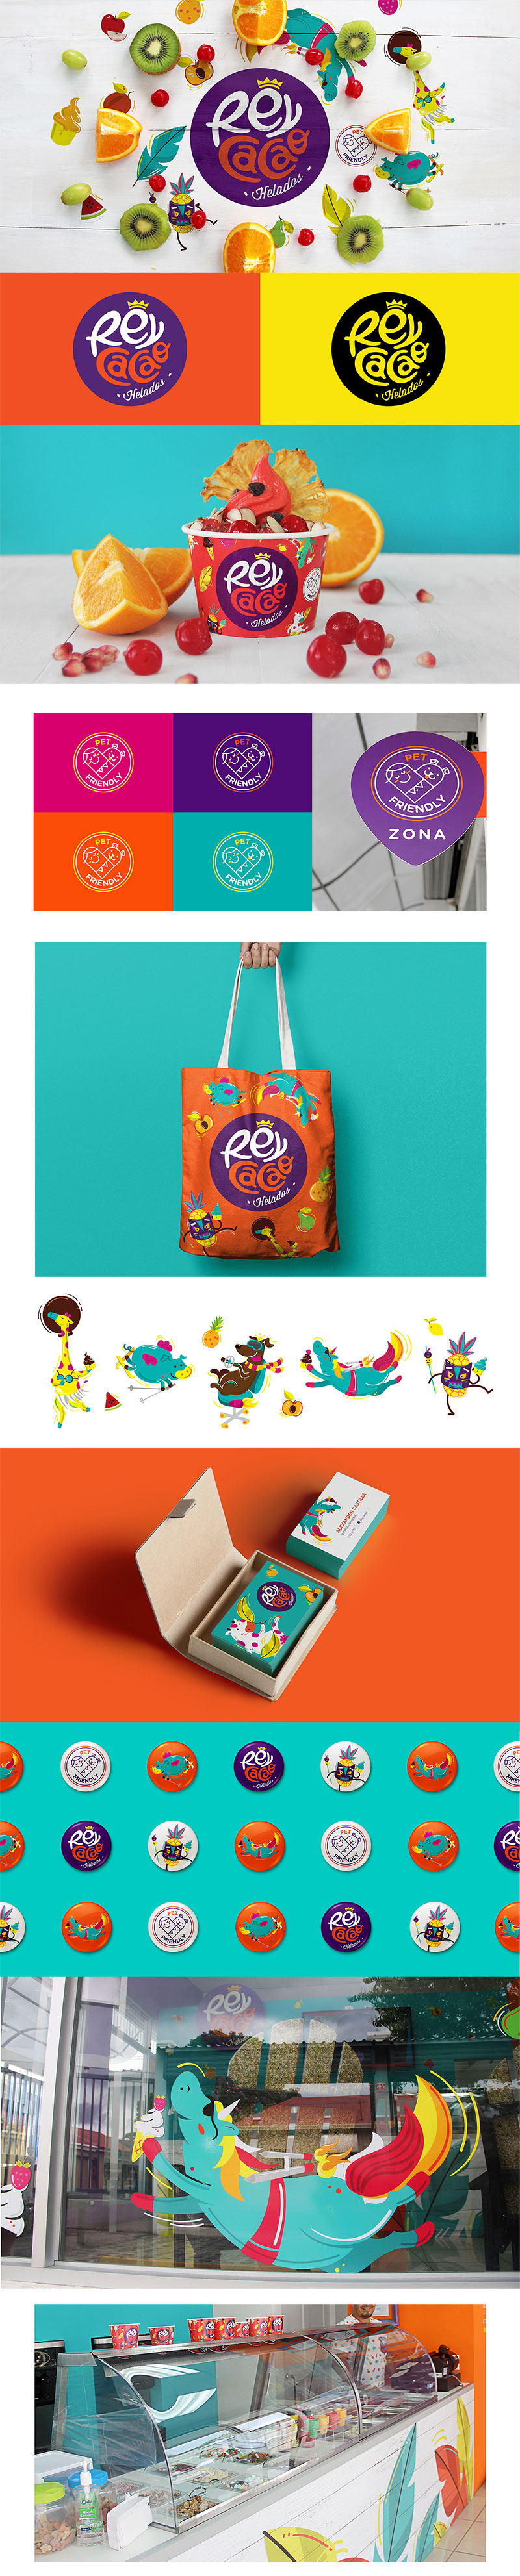 Ice Cream Packaging - Rey Cacao